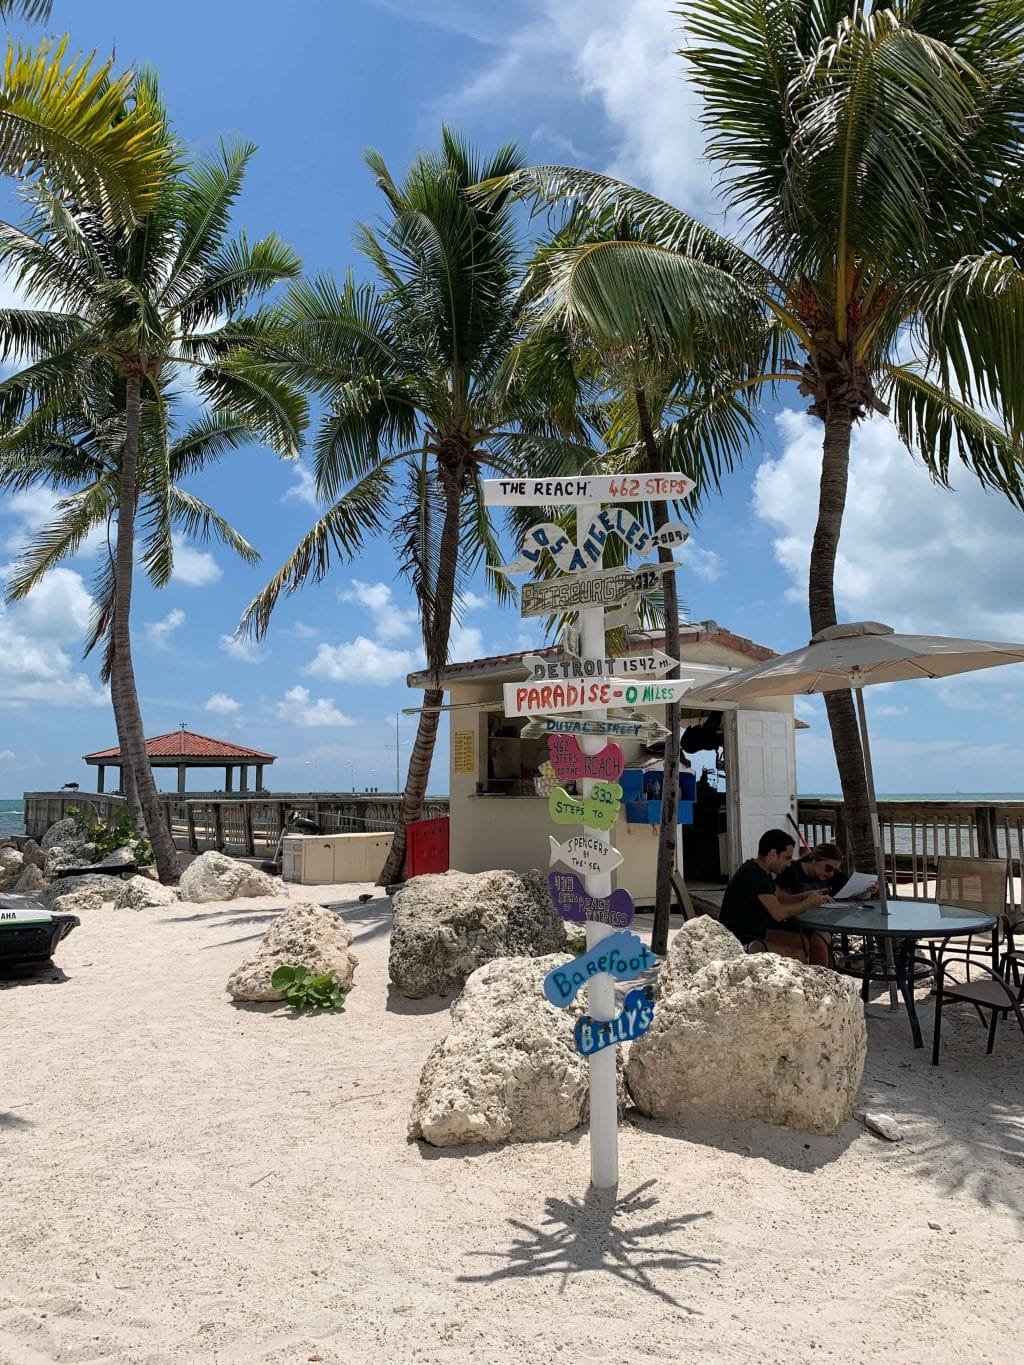 Jet ski tour, Key West Travel Guide, What to do in Key West, Stilettos and Diapers